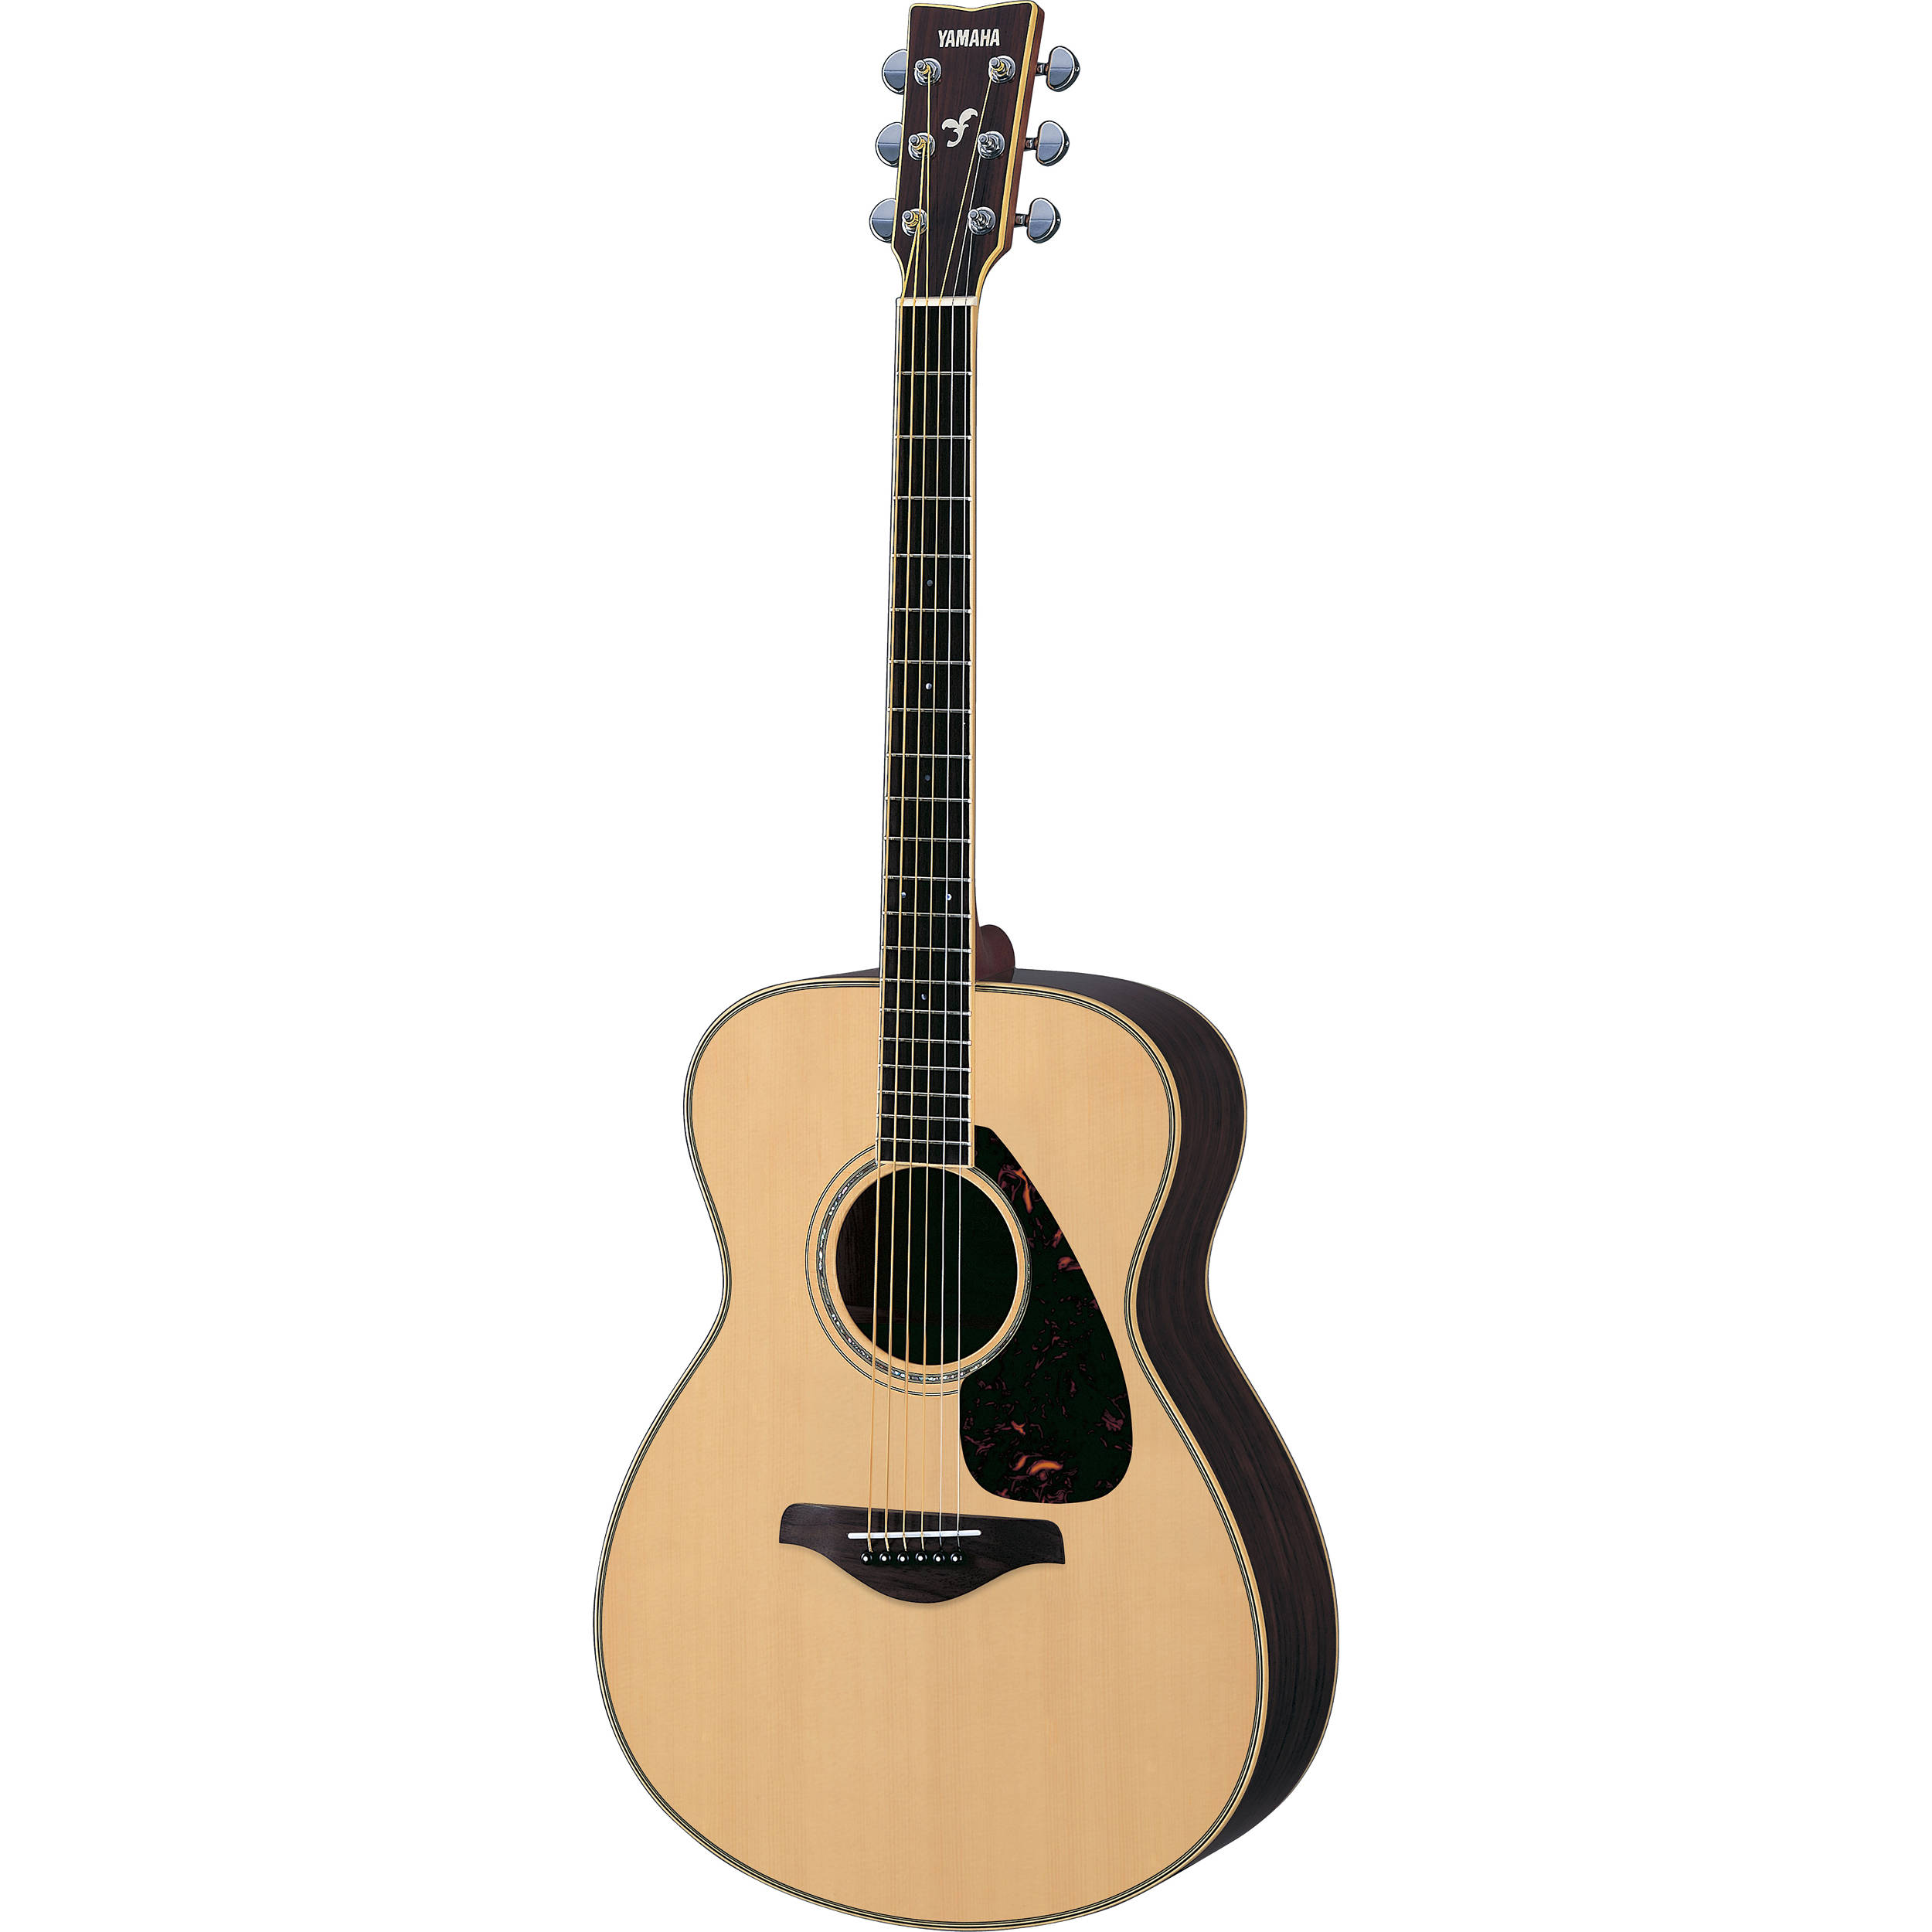 yamaha fs730s solid top acoustic guitar natural fs730s b h